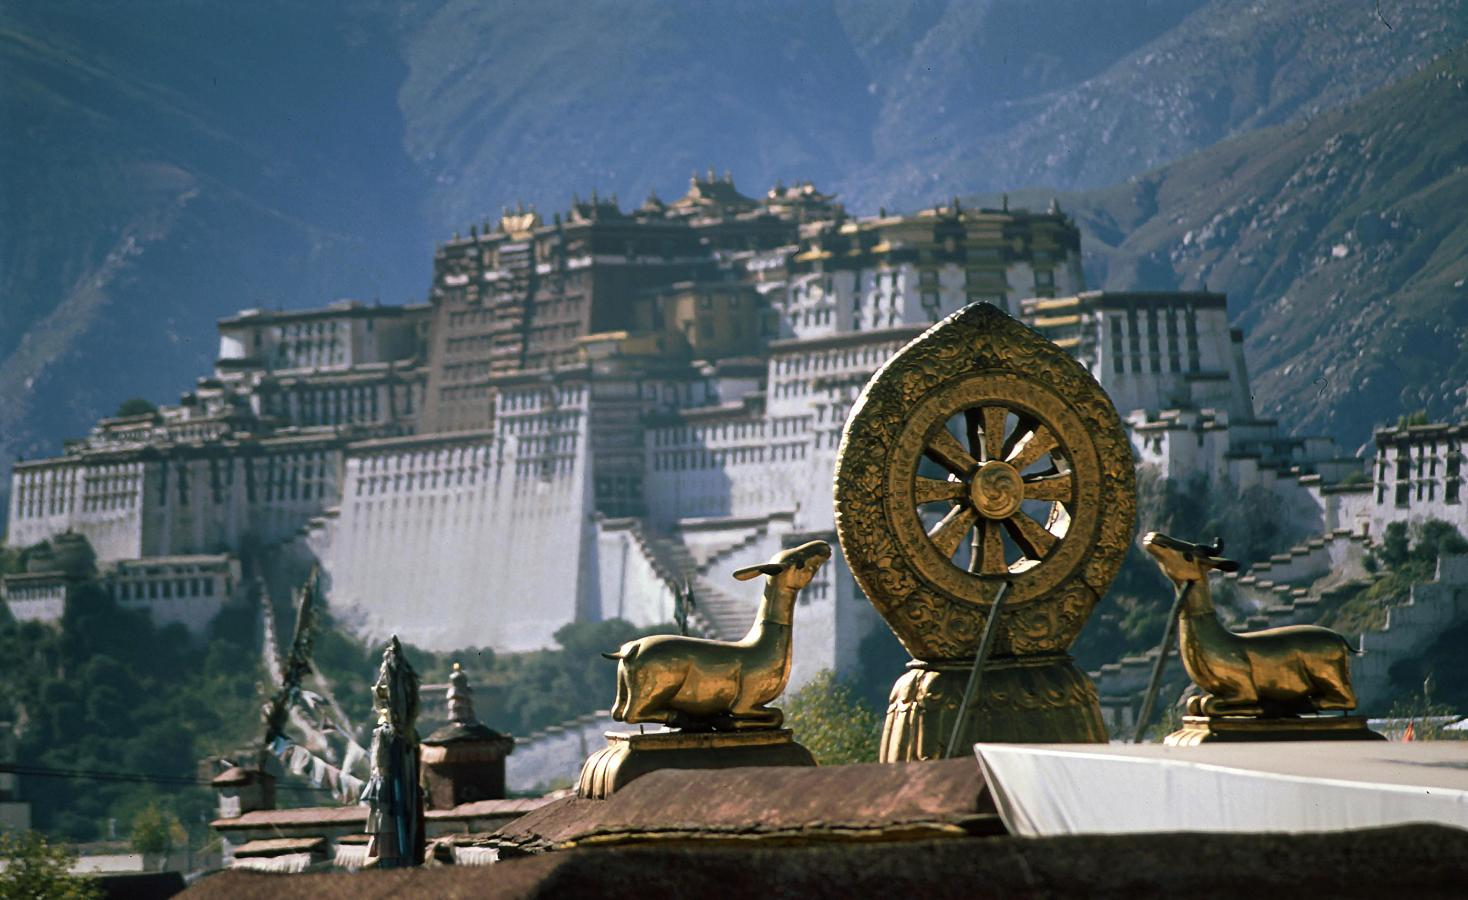 the-potala-palace-seen-from-the-roof-of-the-jokhang-temple-lhasa-tibet-2000